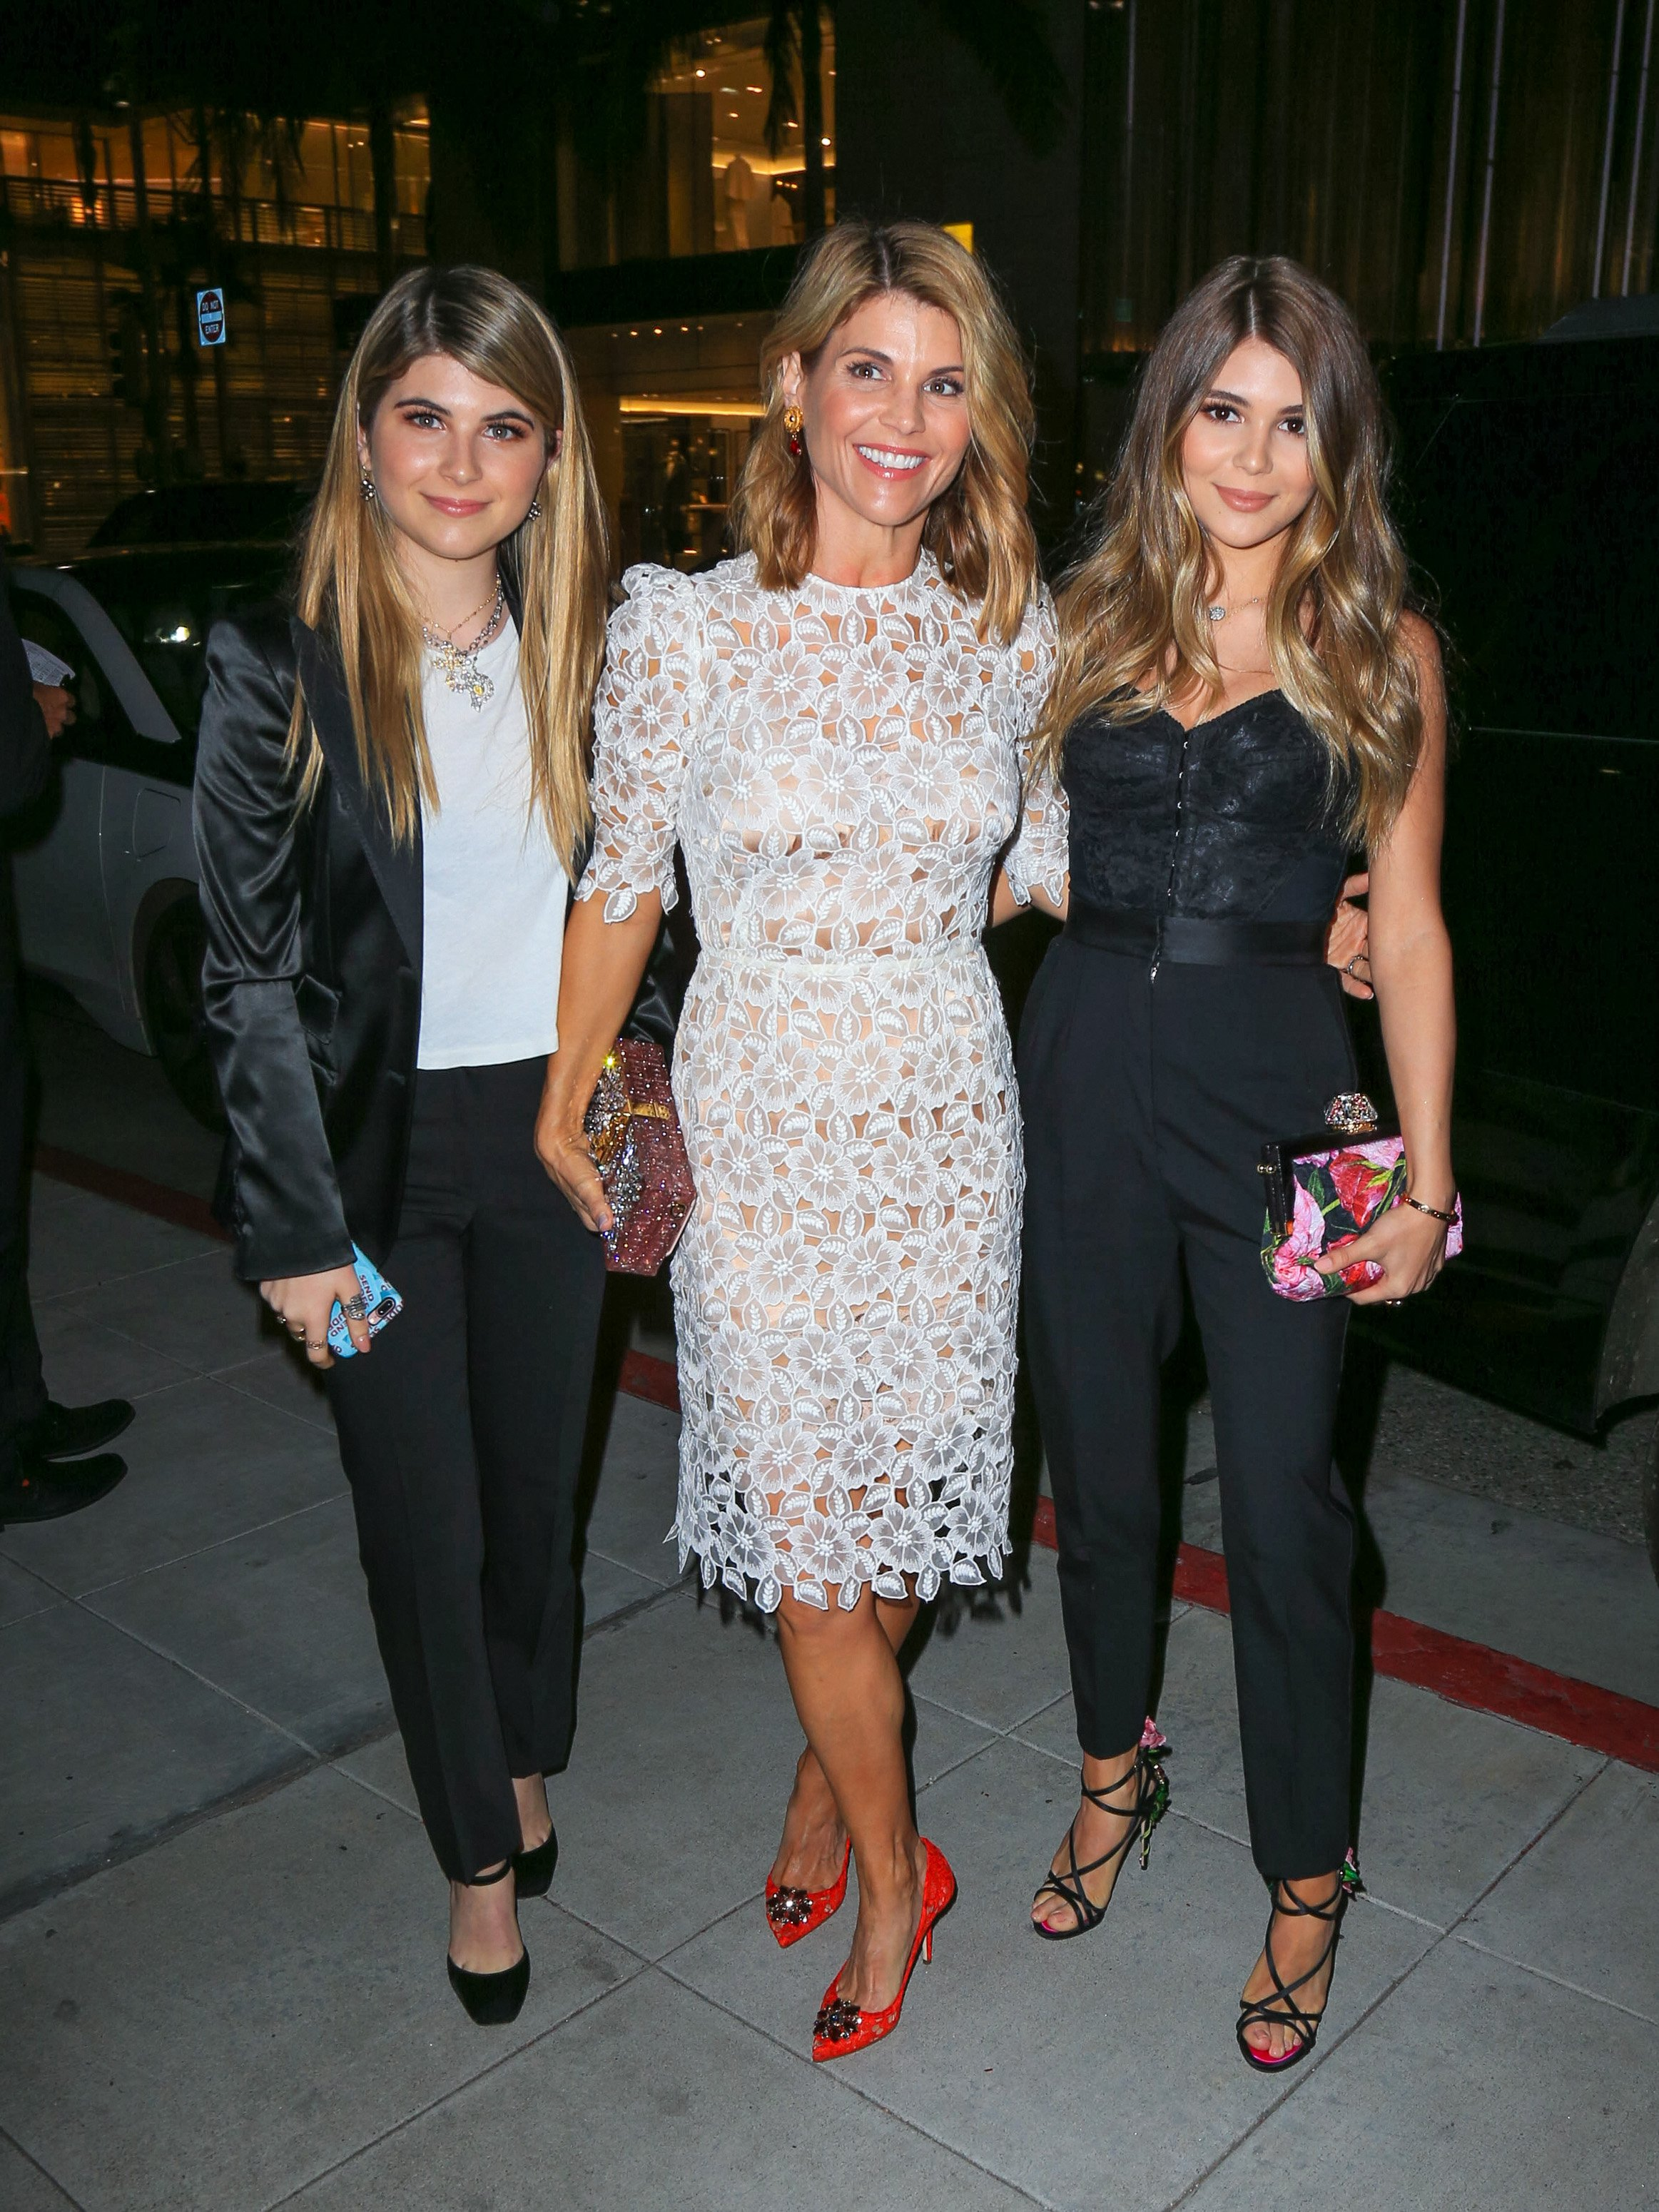 Lori Loughlin and daughters Isabella and Olivia Giannulli appear in Los Angeles, California on March 23, 2017 | Photo: Getty Images